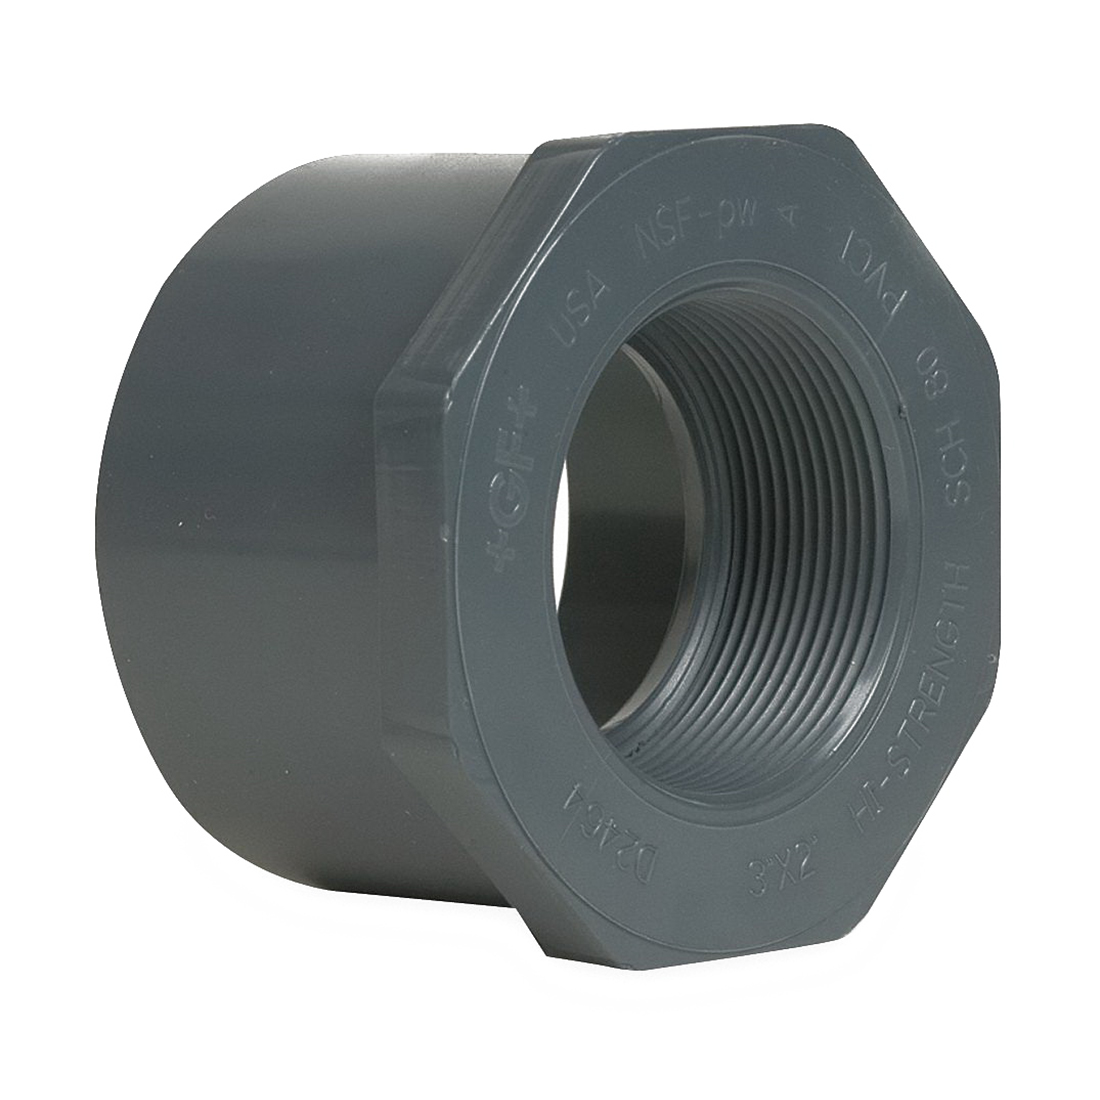 Gray PVC SCH 80 Flush Style Reducer Bushing, 3 in x 2 in, Spigot x FNPT